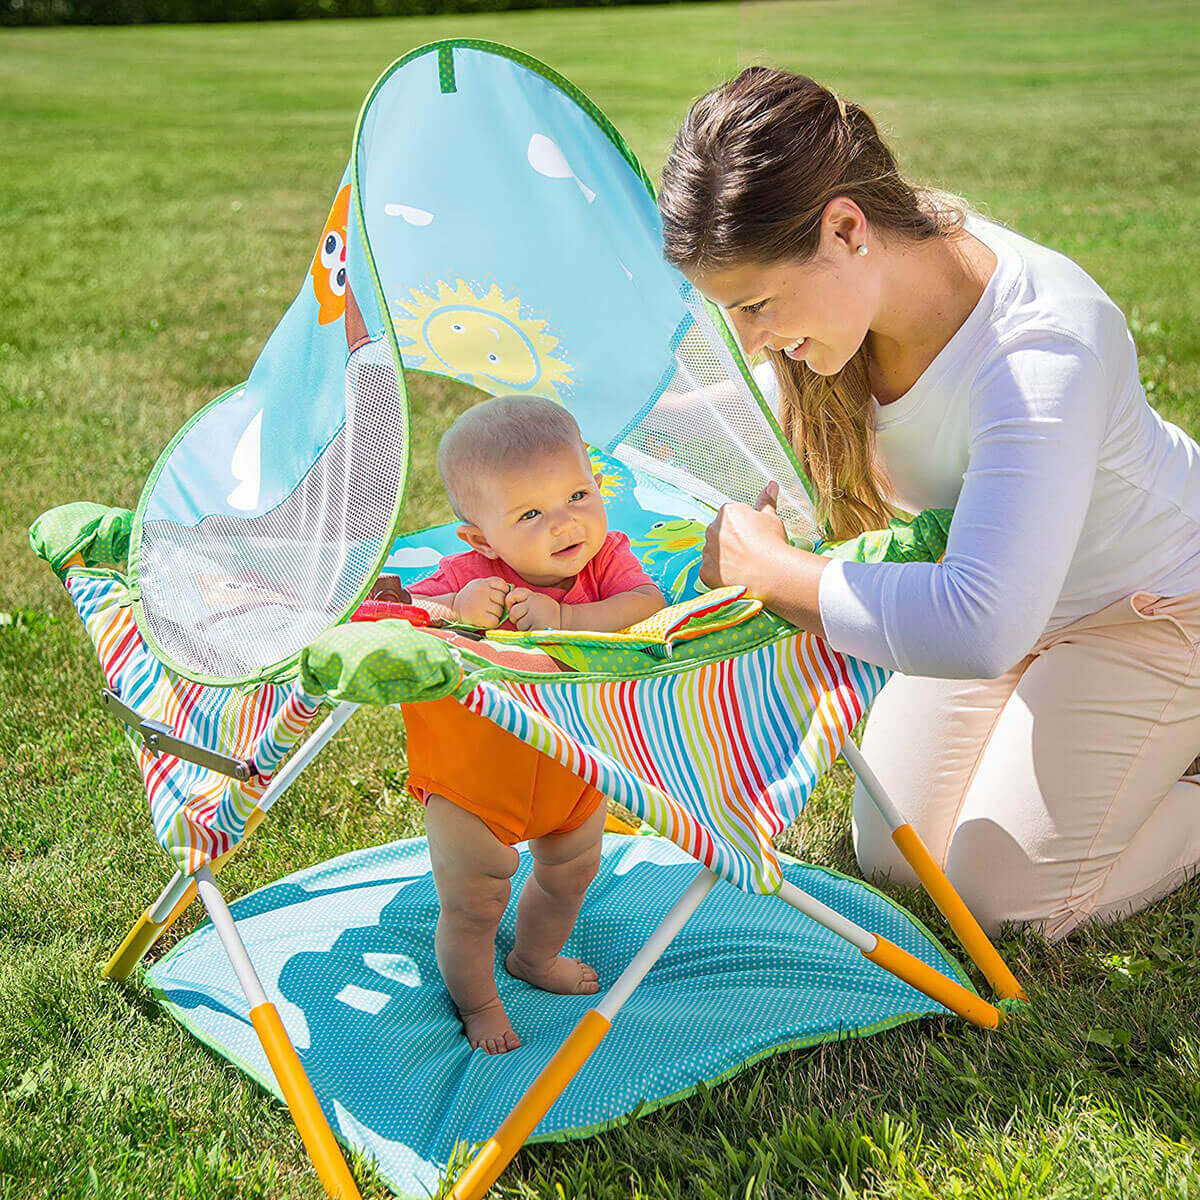 Outdoor image of a baby in Summer Infant Pop Jump Portable Activity Center and her mother looking after her.